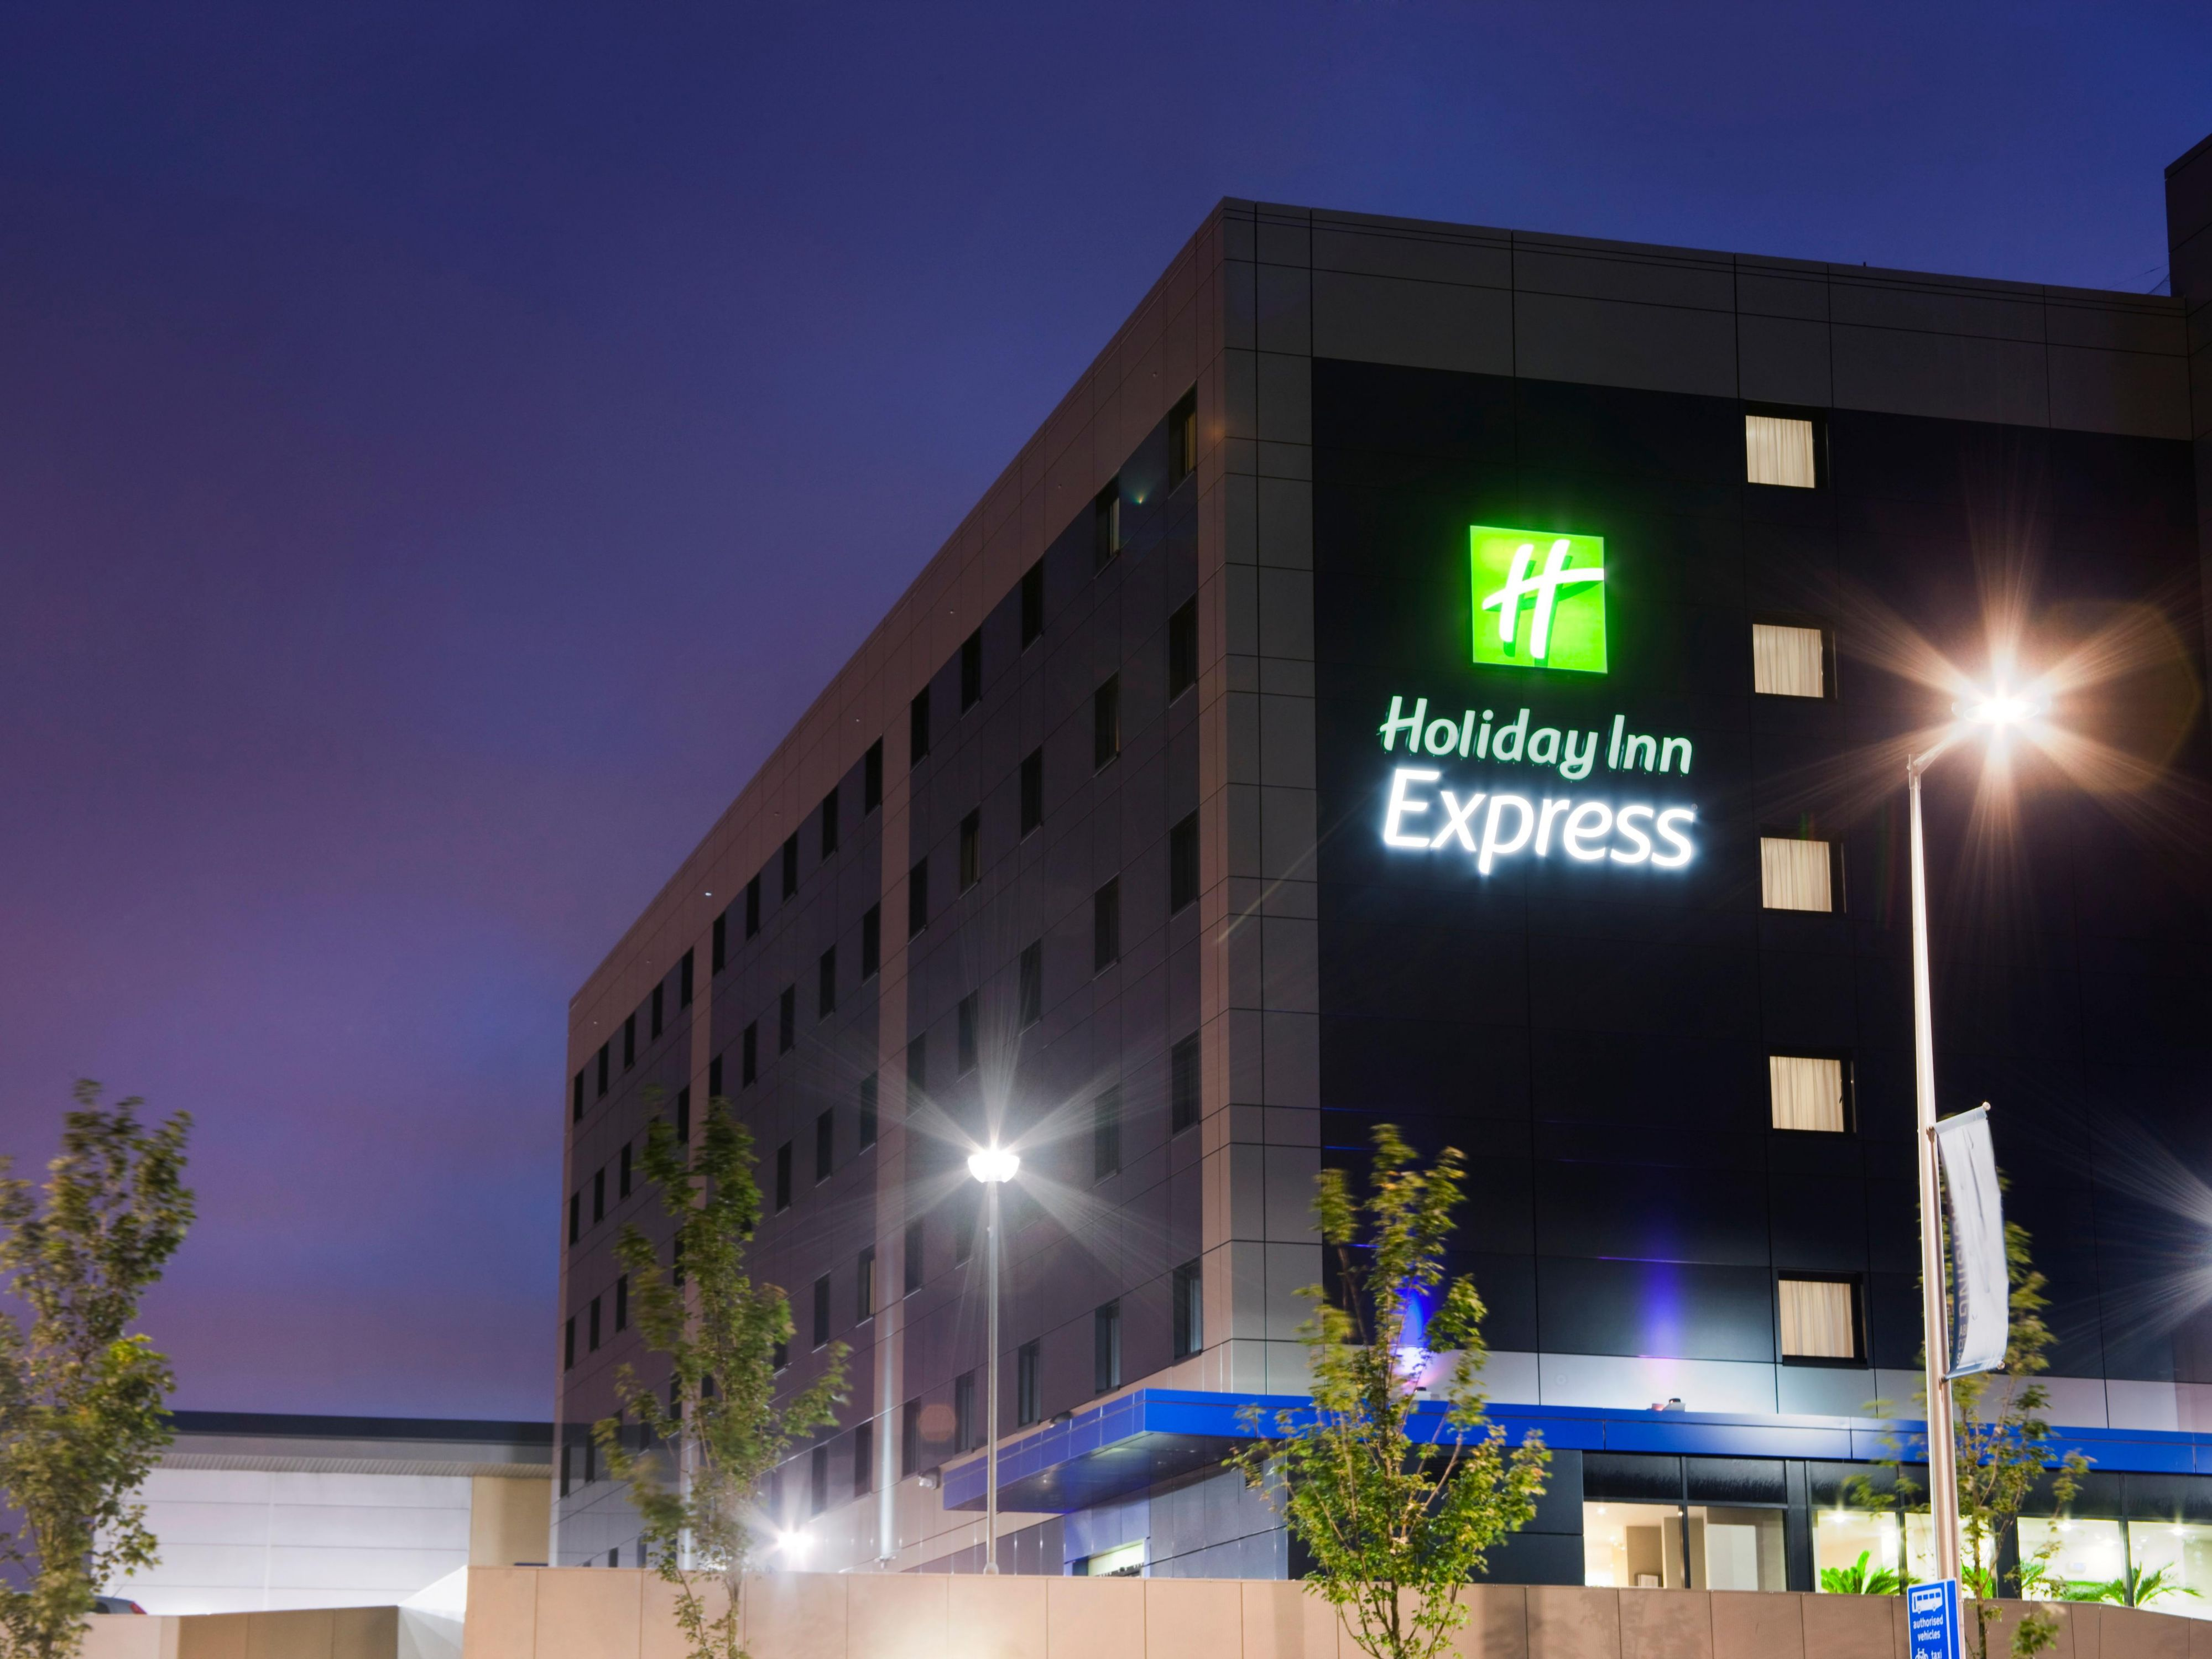 Exterior Side view of Holiday Inn Express AECC